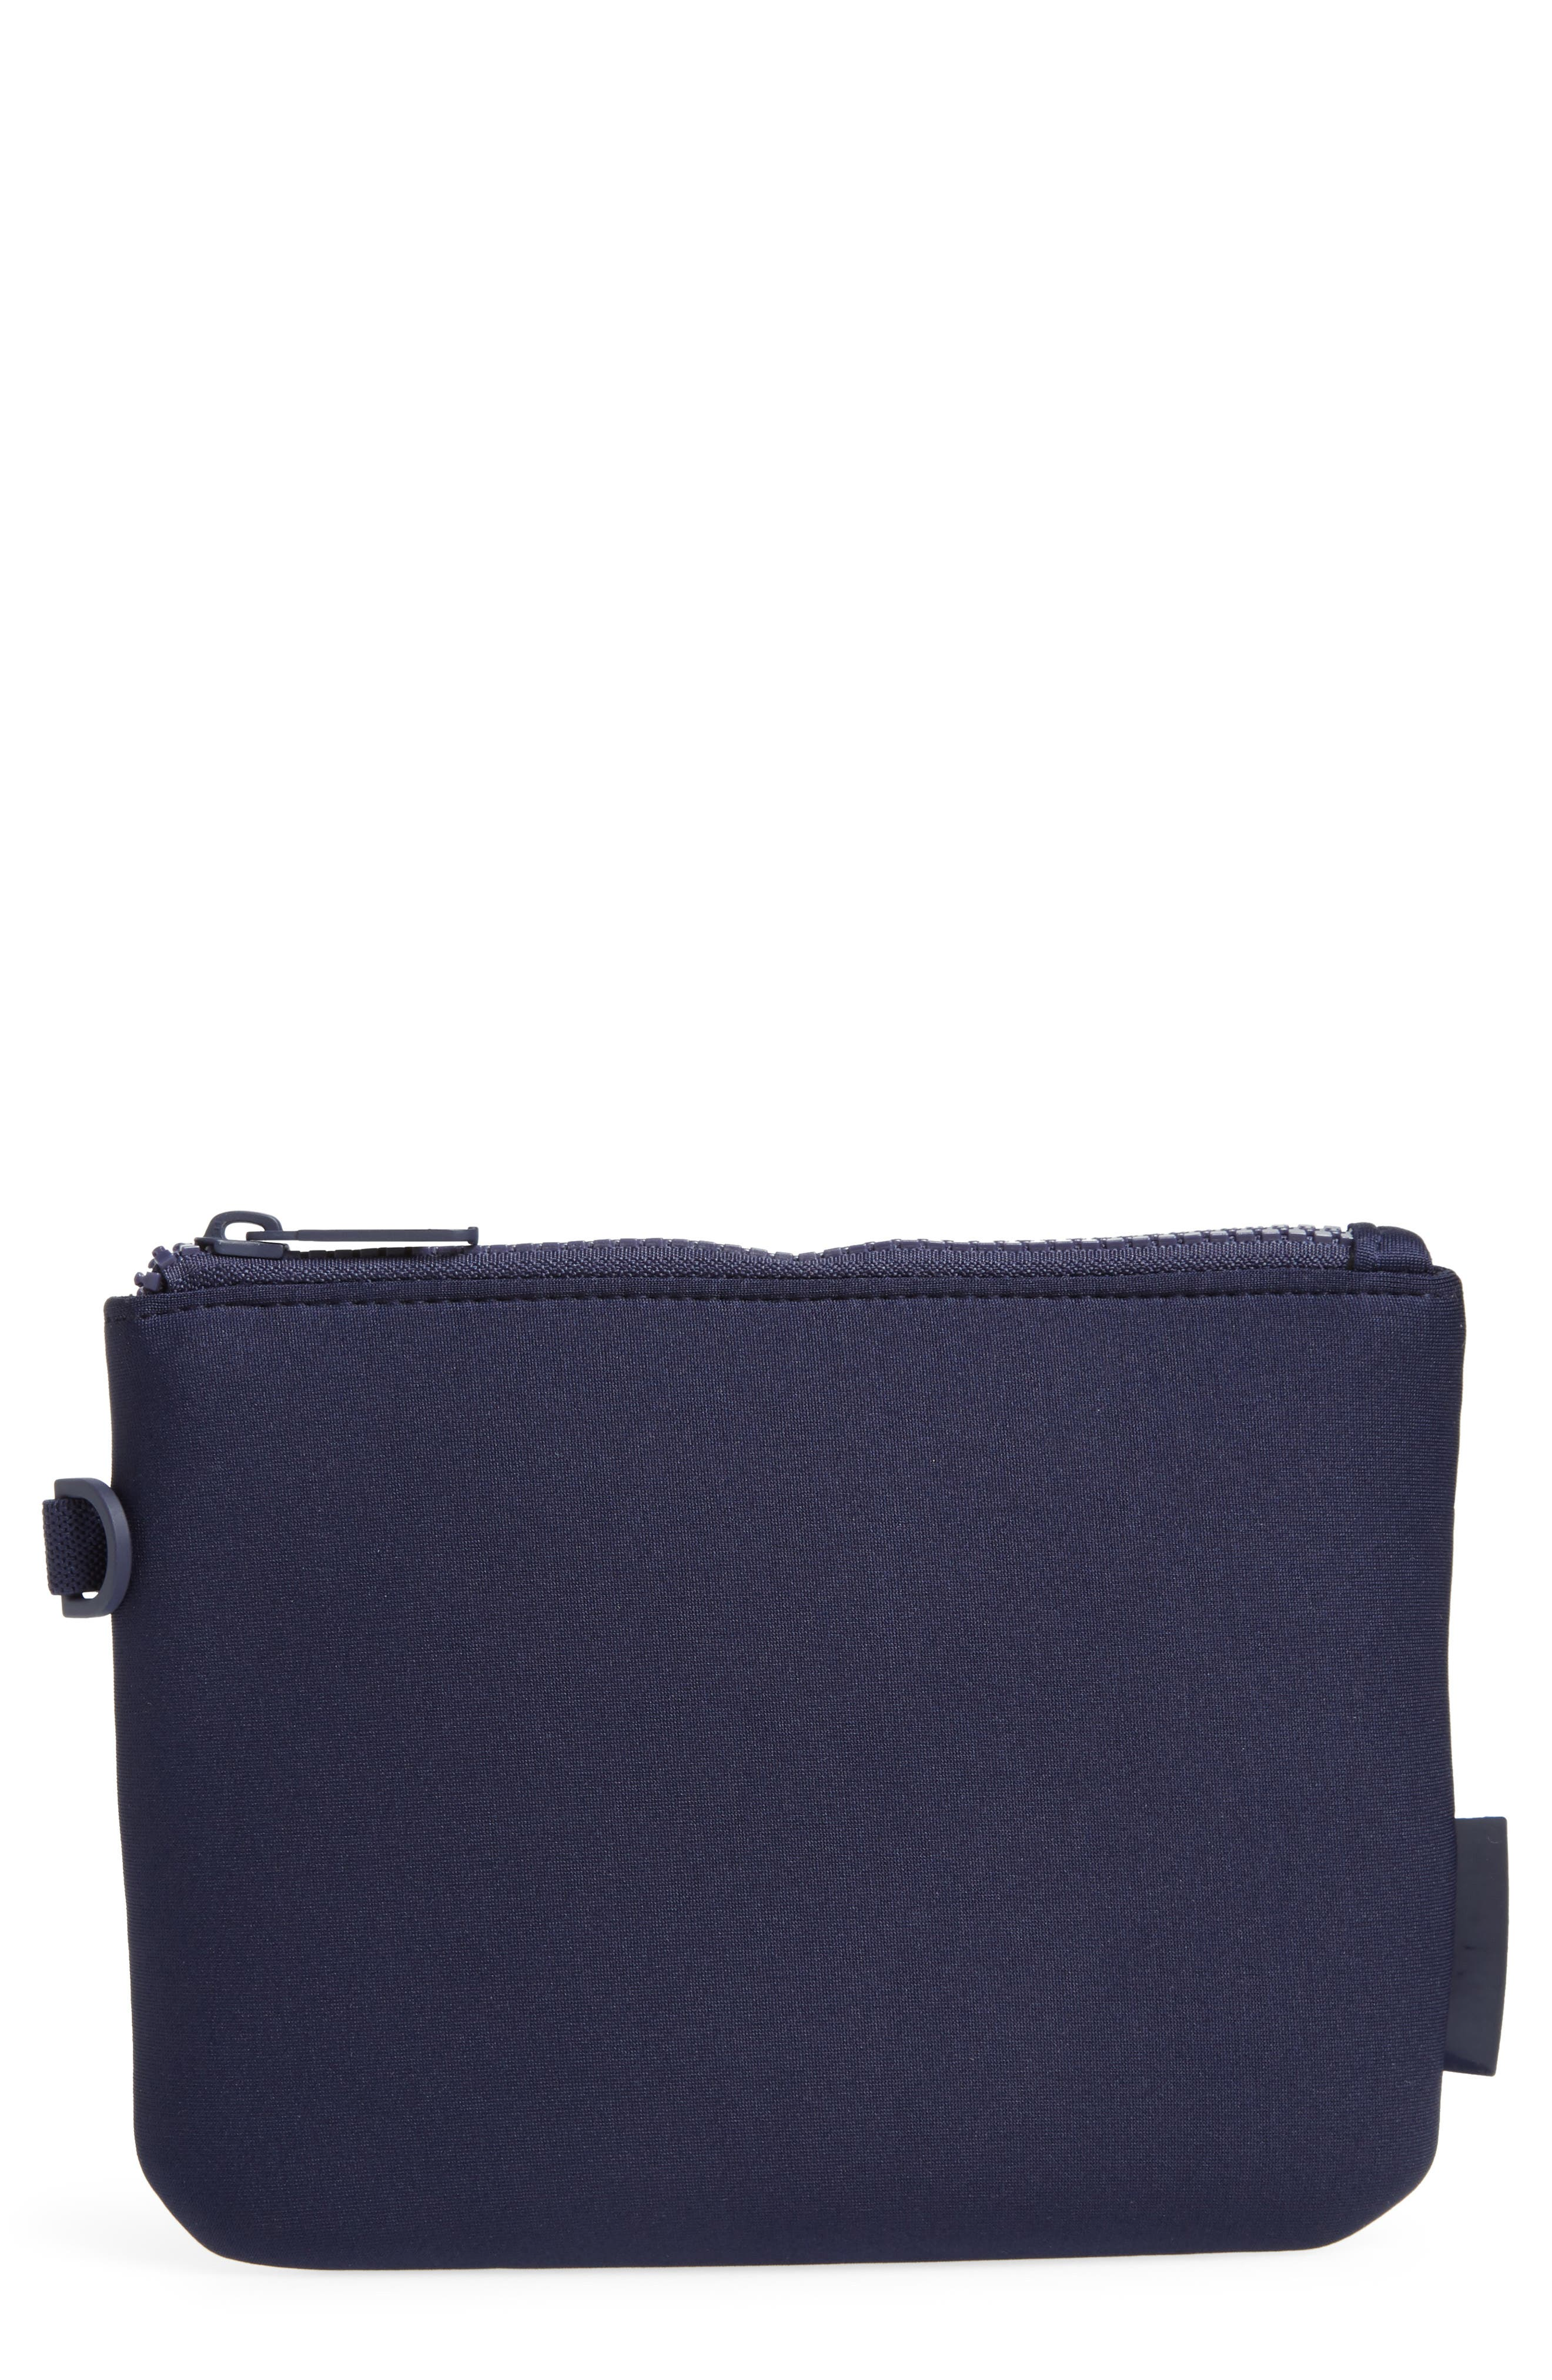 DAGNE DOVER Scout Small Zip Top Pouch - Blue in Storm